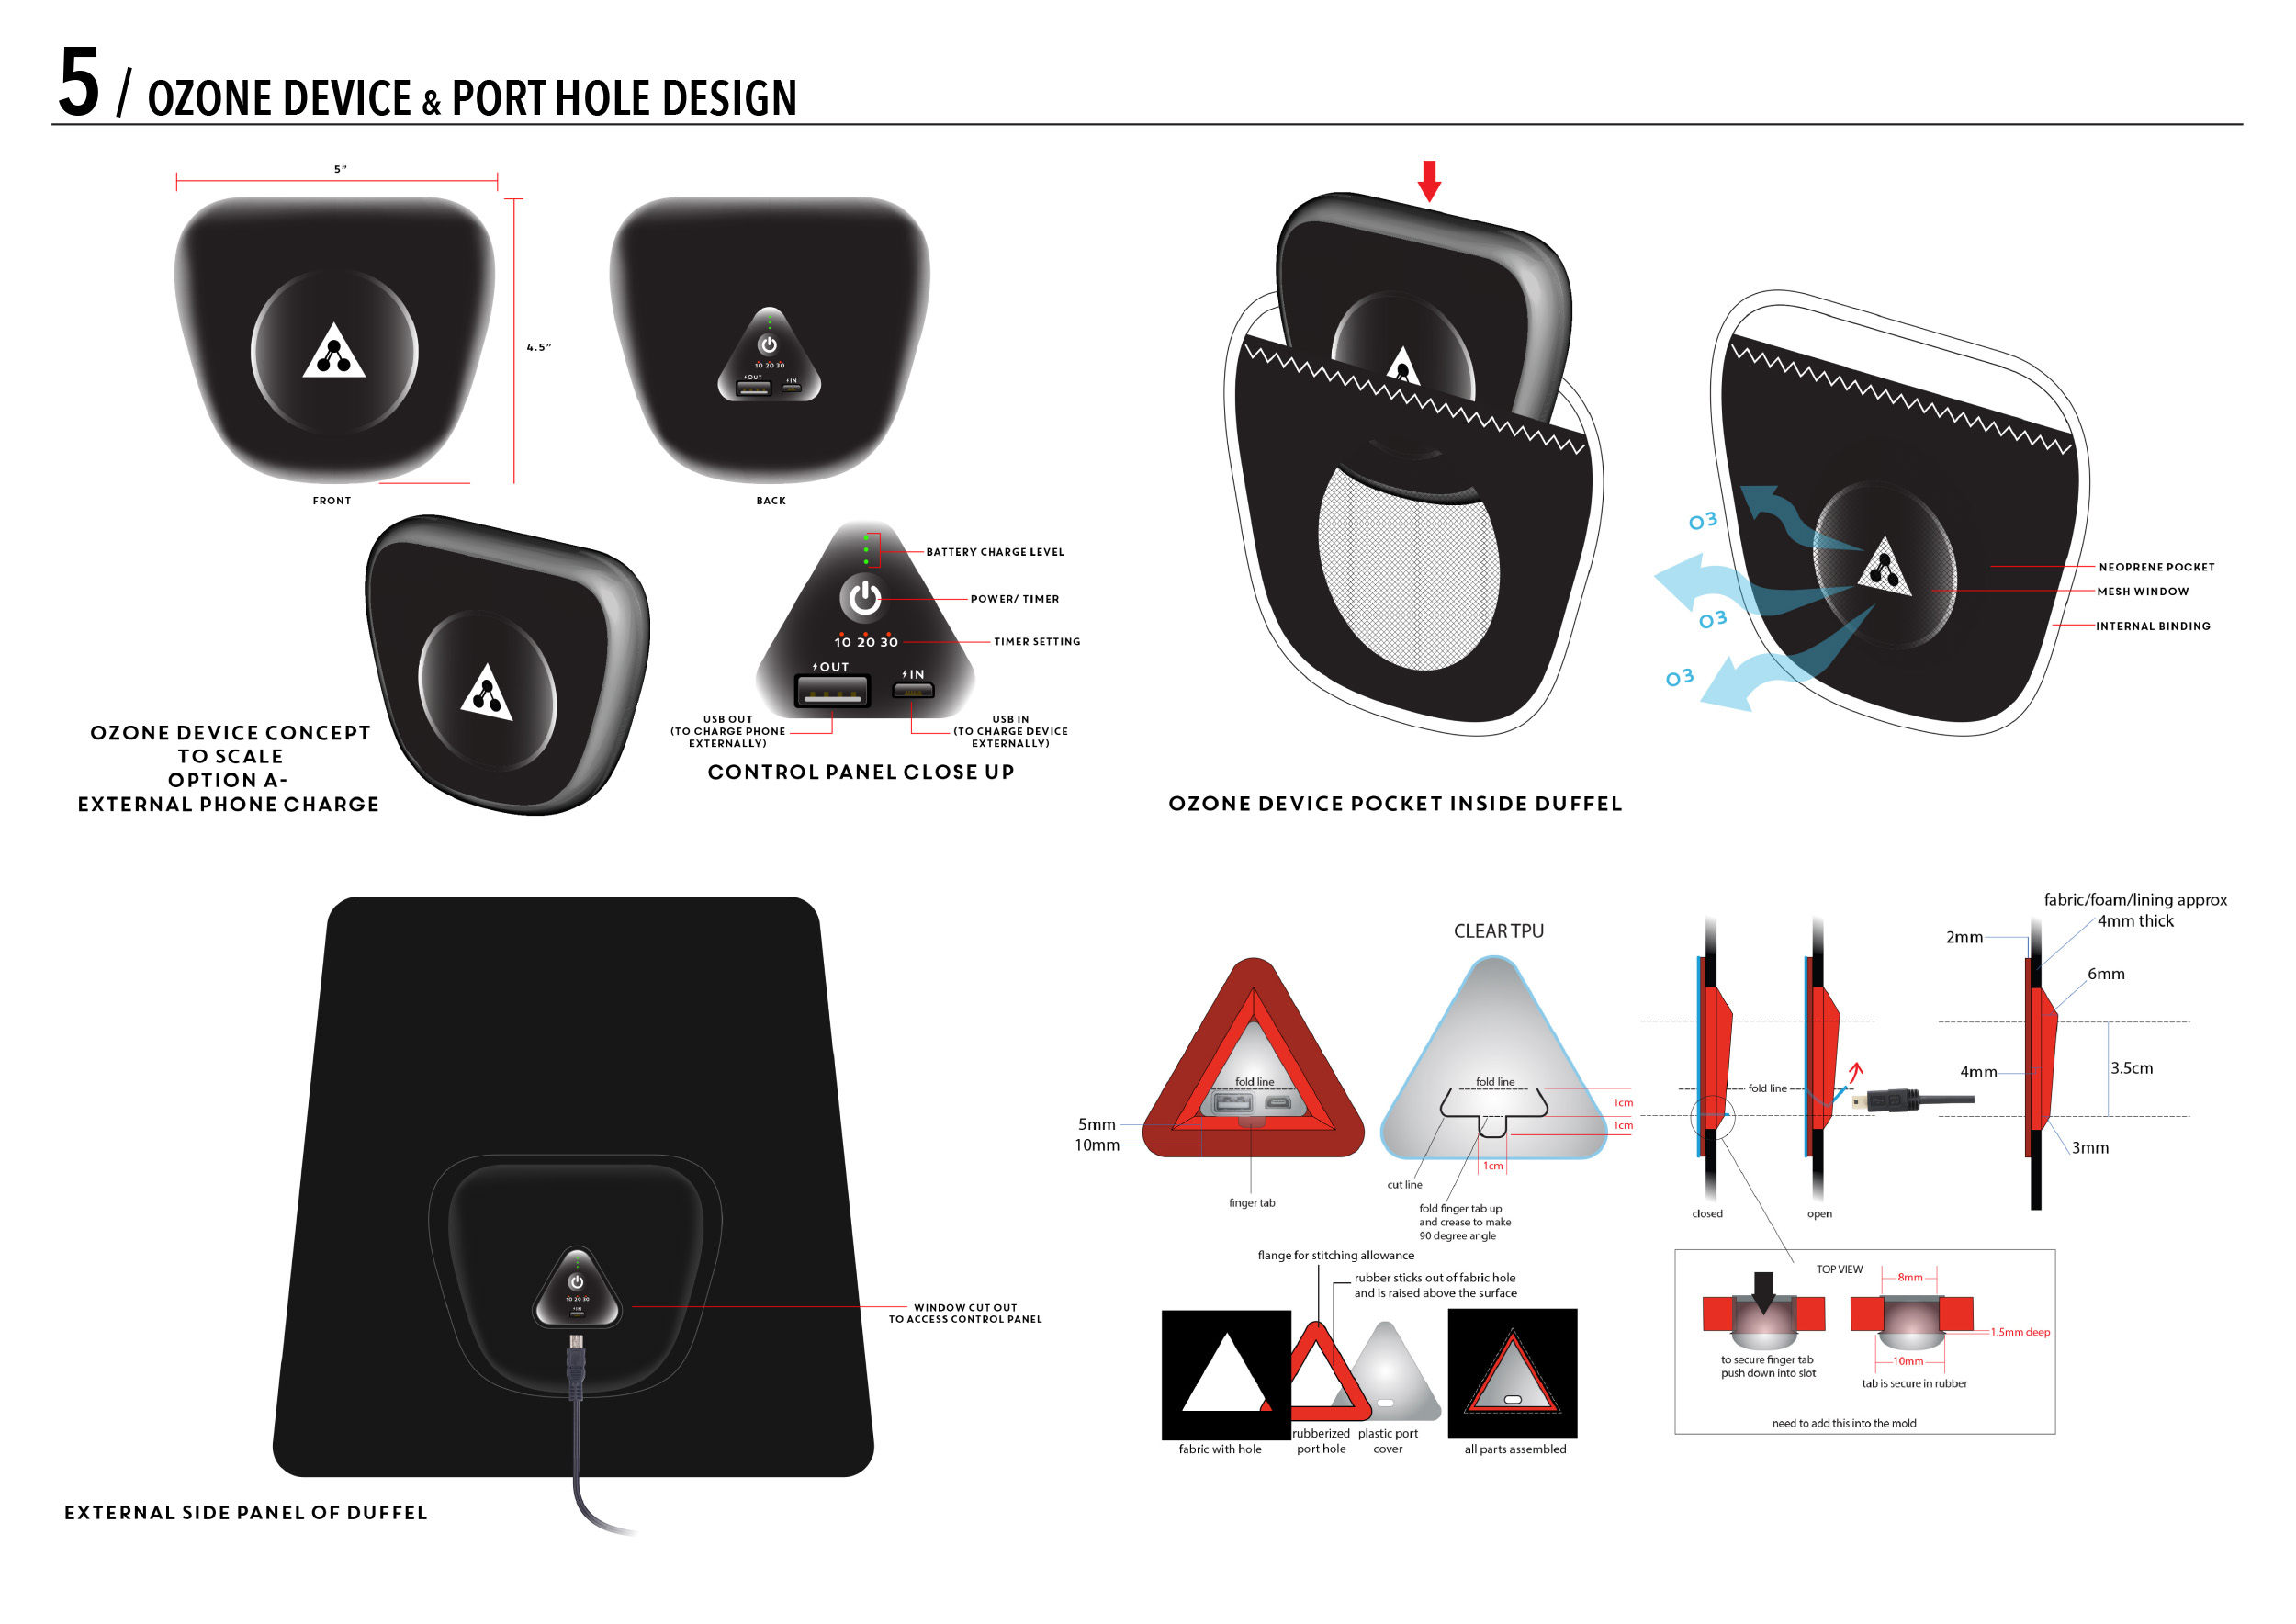 Paqsule Duffle Product Design Ozone Device